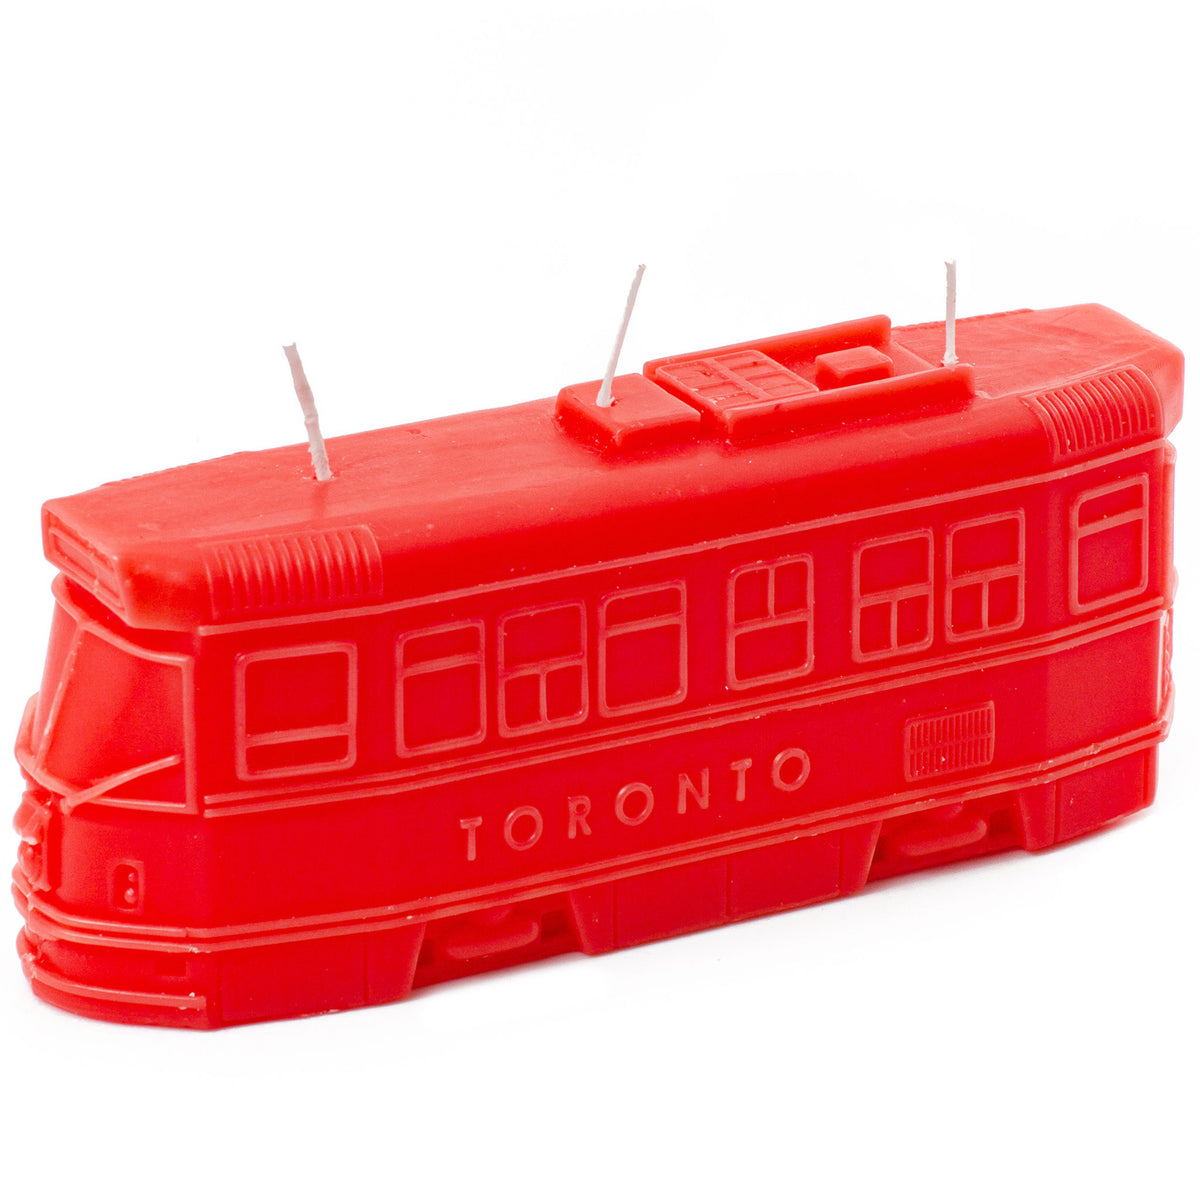 Toronto Streetcar Candle - Main and Local